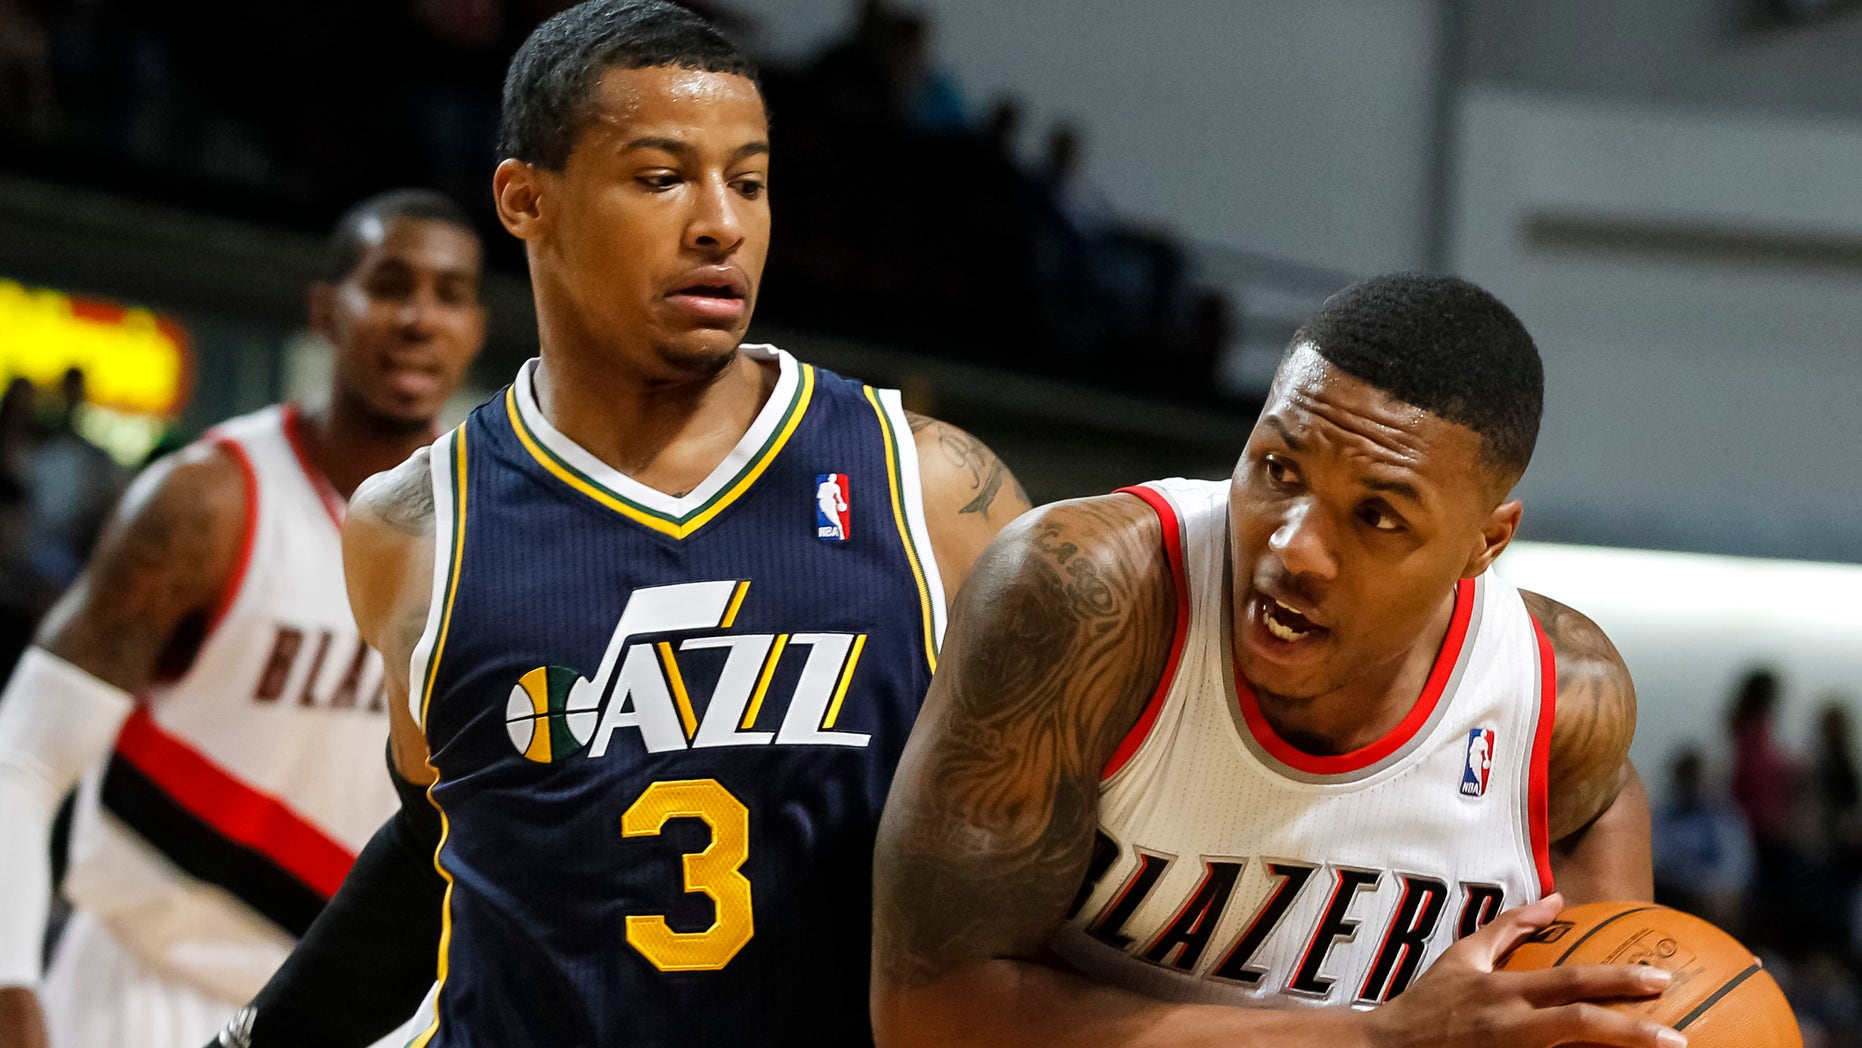 Portland Trail Blazers point guard Damian Lillard, right, drives the ball past Utah Jazz point guard Trey Burke (3) in the first half of a preseason NBA basketball game on Friday, Oct. 11, 2013, in Boise, Idaho. (AP Photo/Otto Kitsinger)